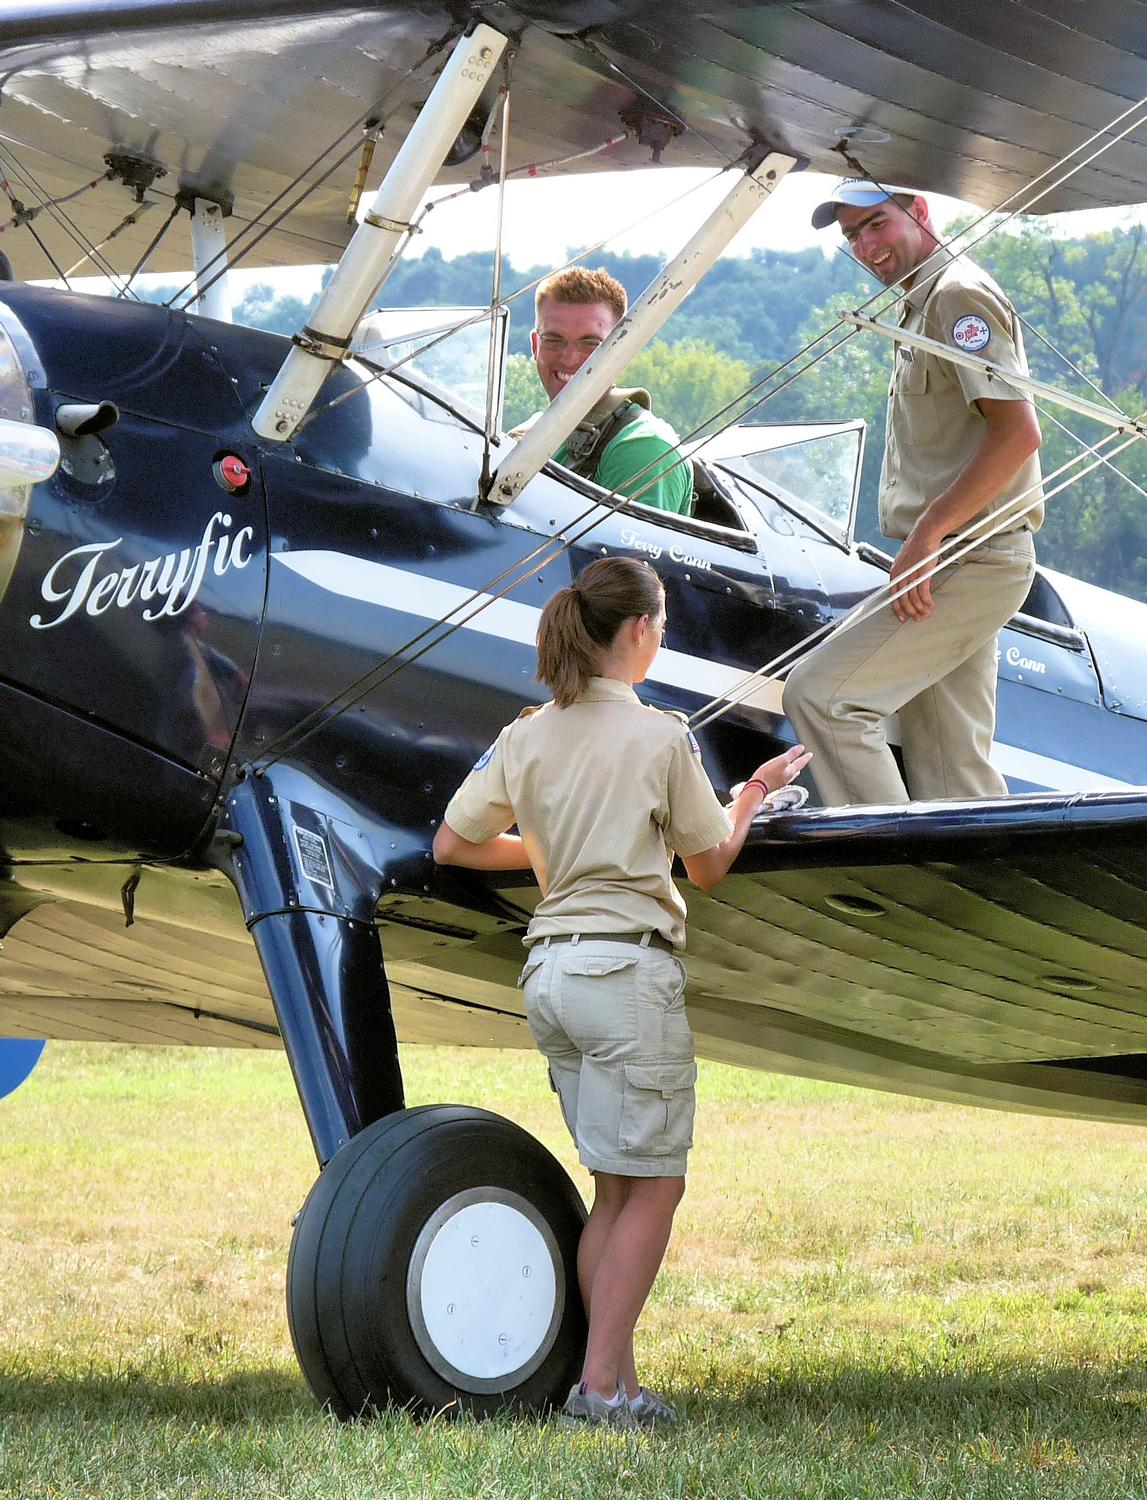 vintage biplane - The flight crew discusses things. - Panasonic DMC-FZ28 -- At the Flying Circus - Bealton Virginia - Tony Karp, design, art, photography, techno-impressionist, techno-impressionism, aerial photography , drone , drones , dji , mavic pro , video , 3D printing - Books -